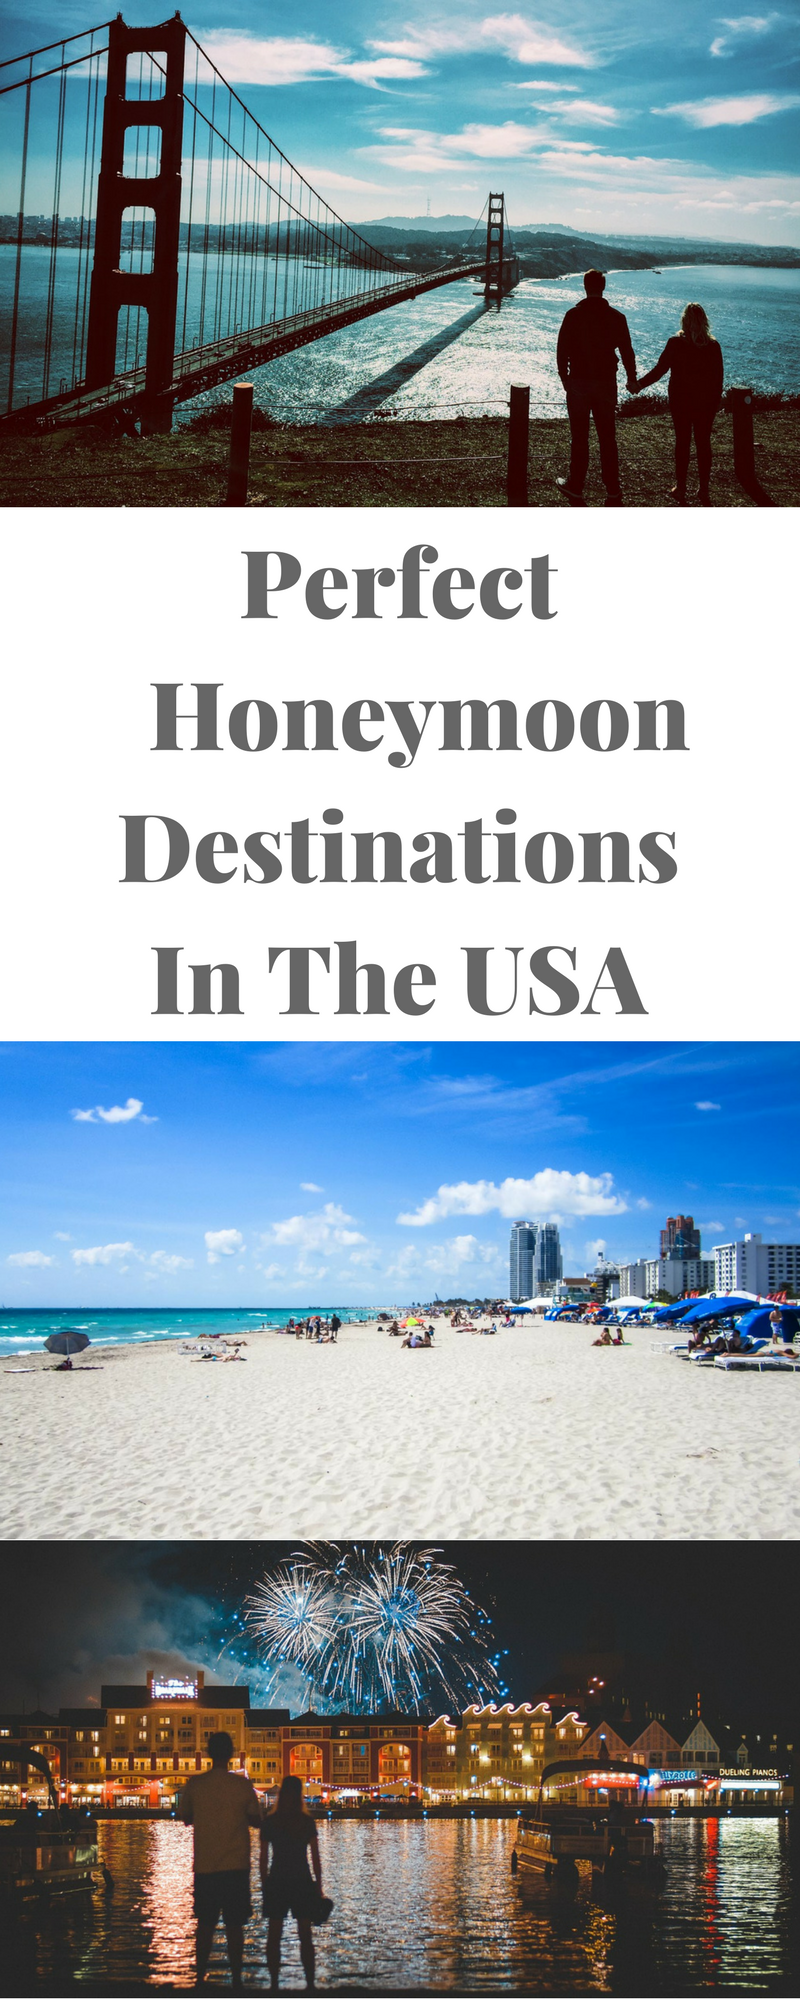 Perfect honeymoon destinations in the usa for Honeymoon spots in america